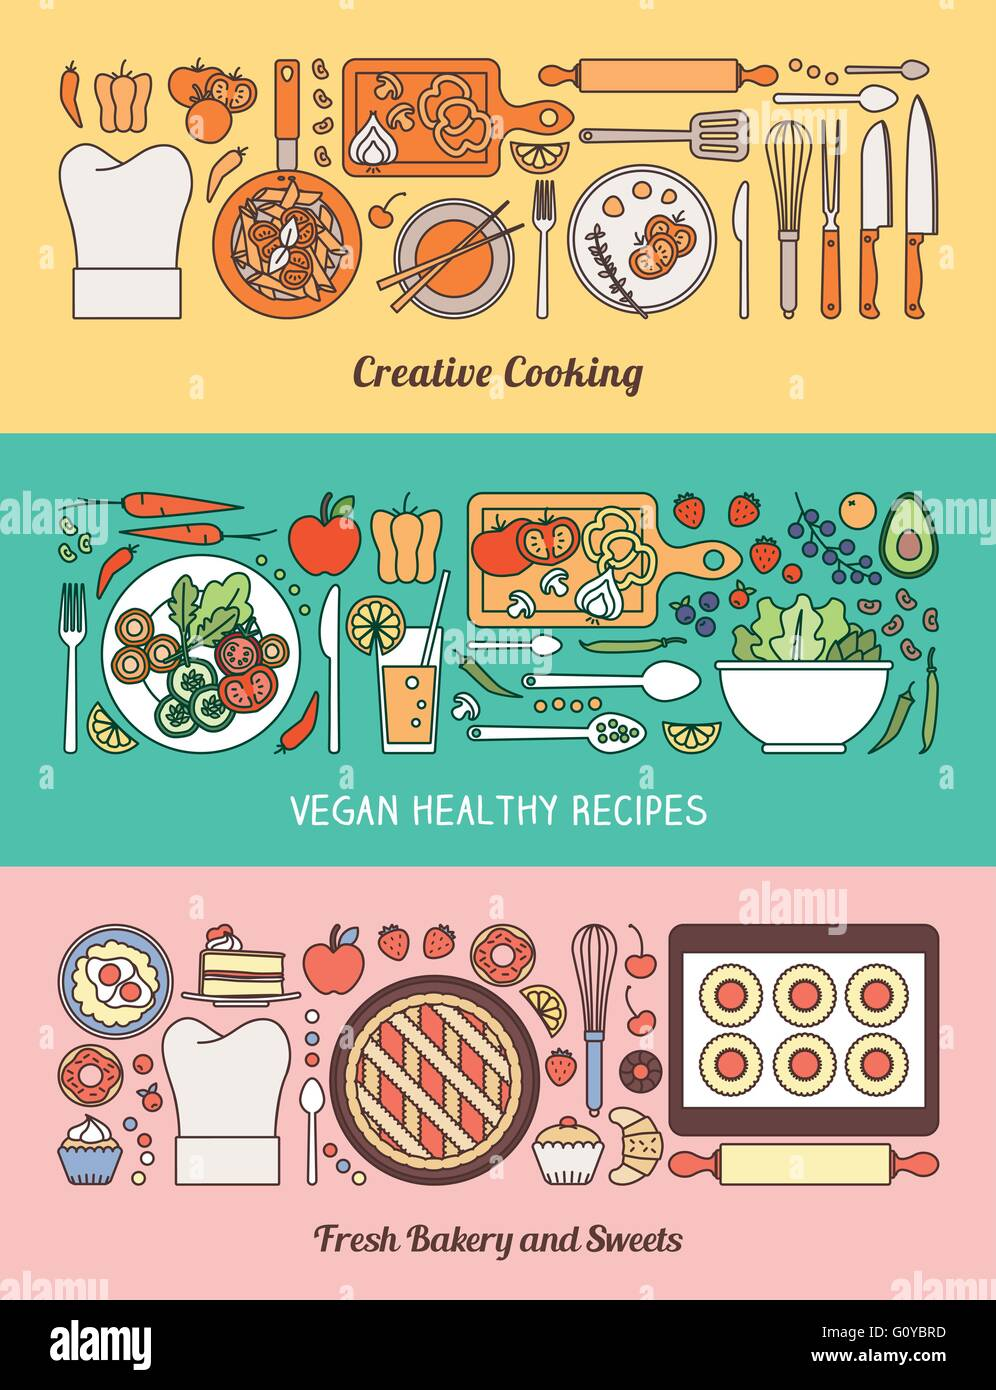 Food, cooking and healthy eating banner set with kitchen utensils, recipes, vegetables and baked home made sweets - Stock Vector